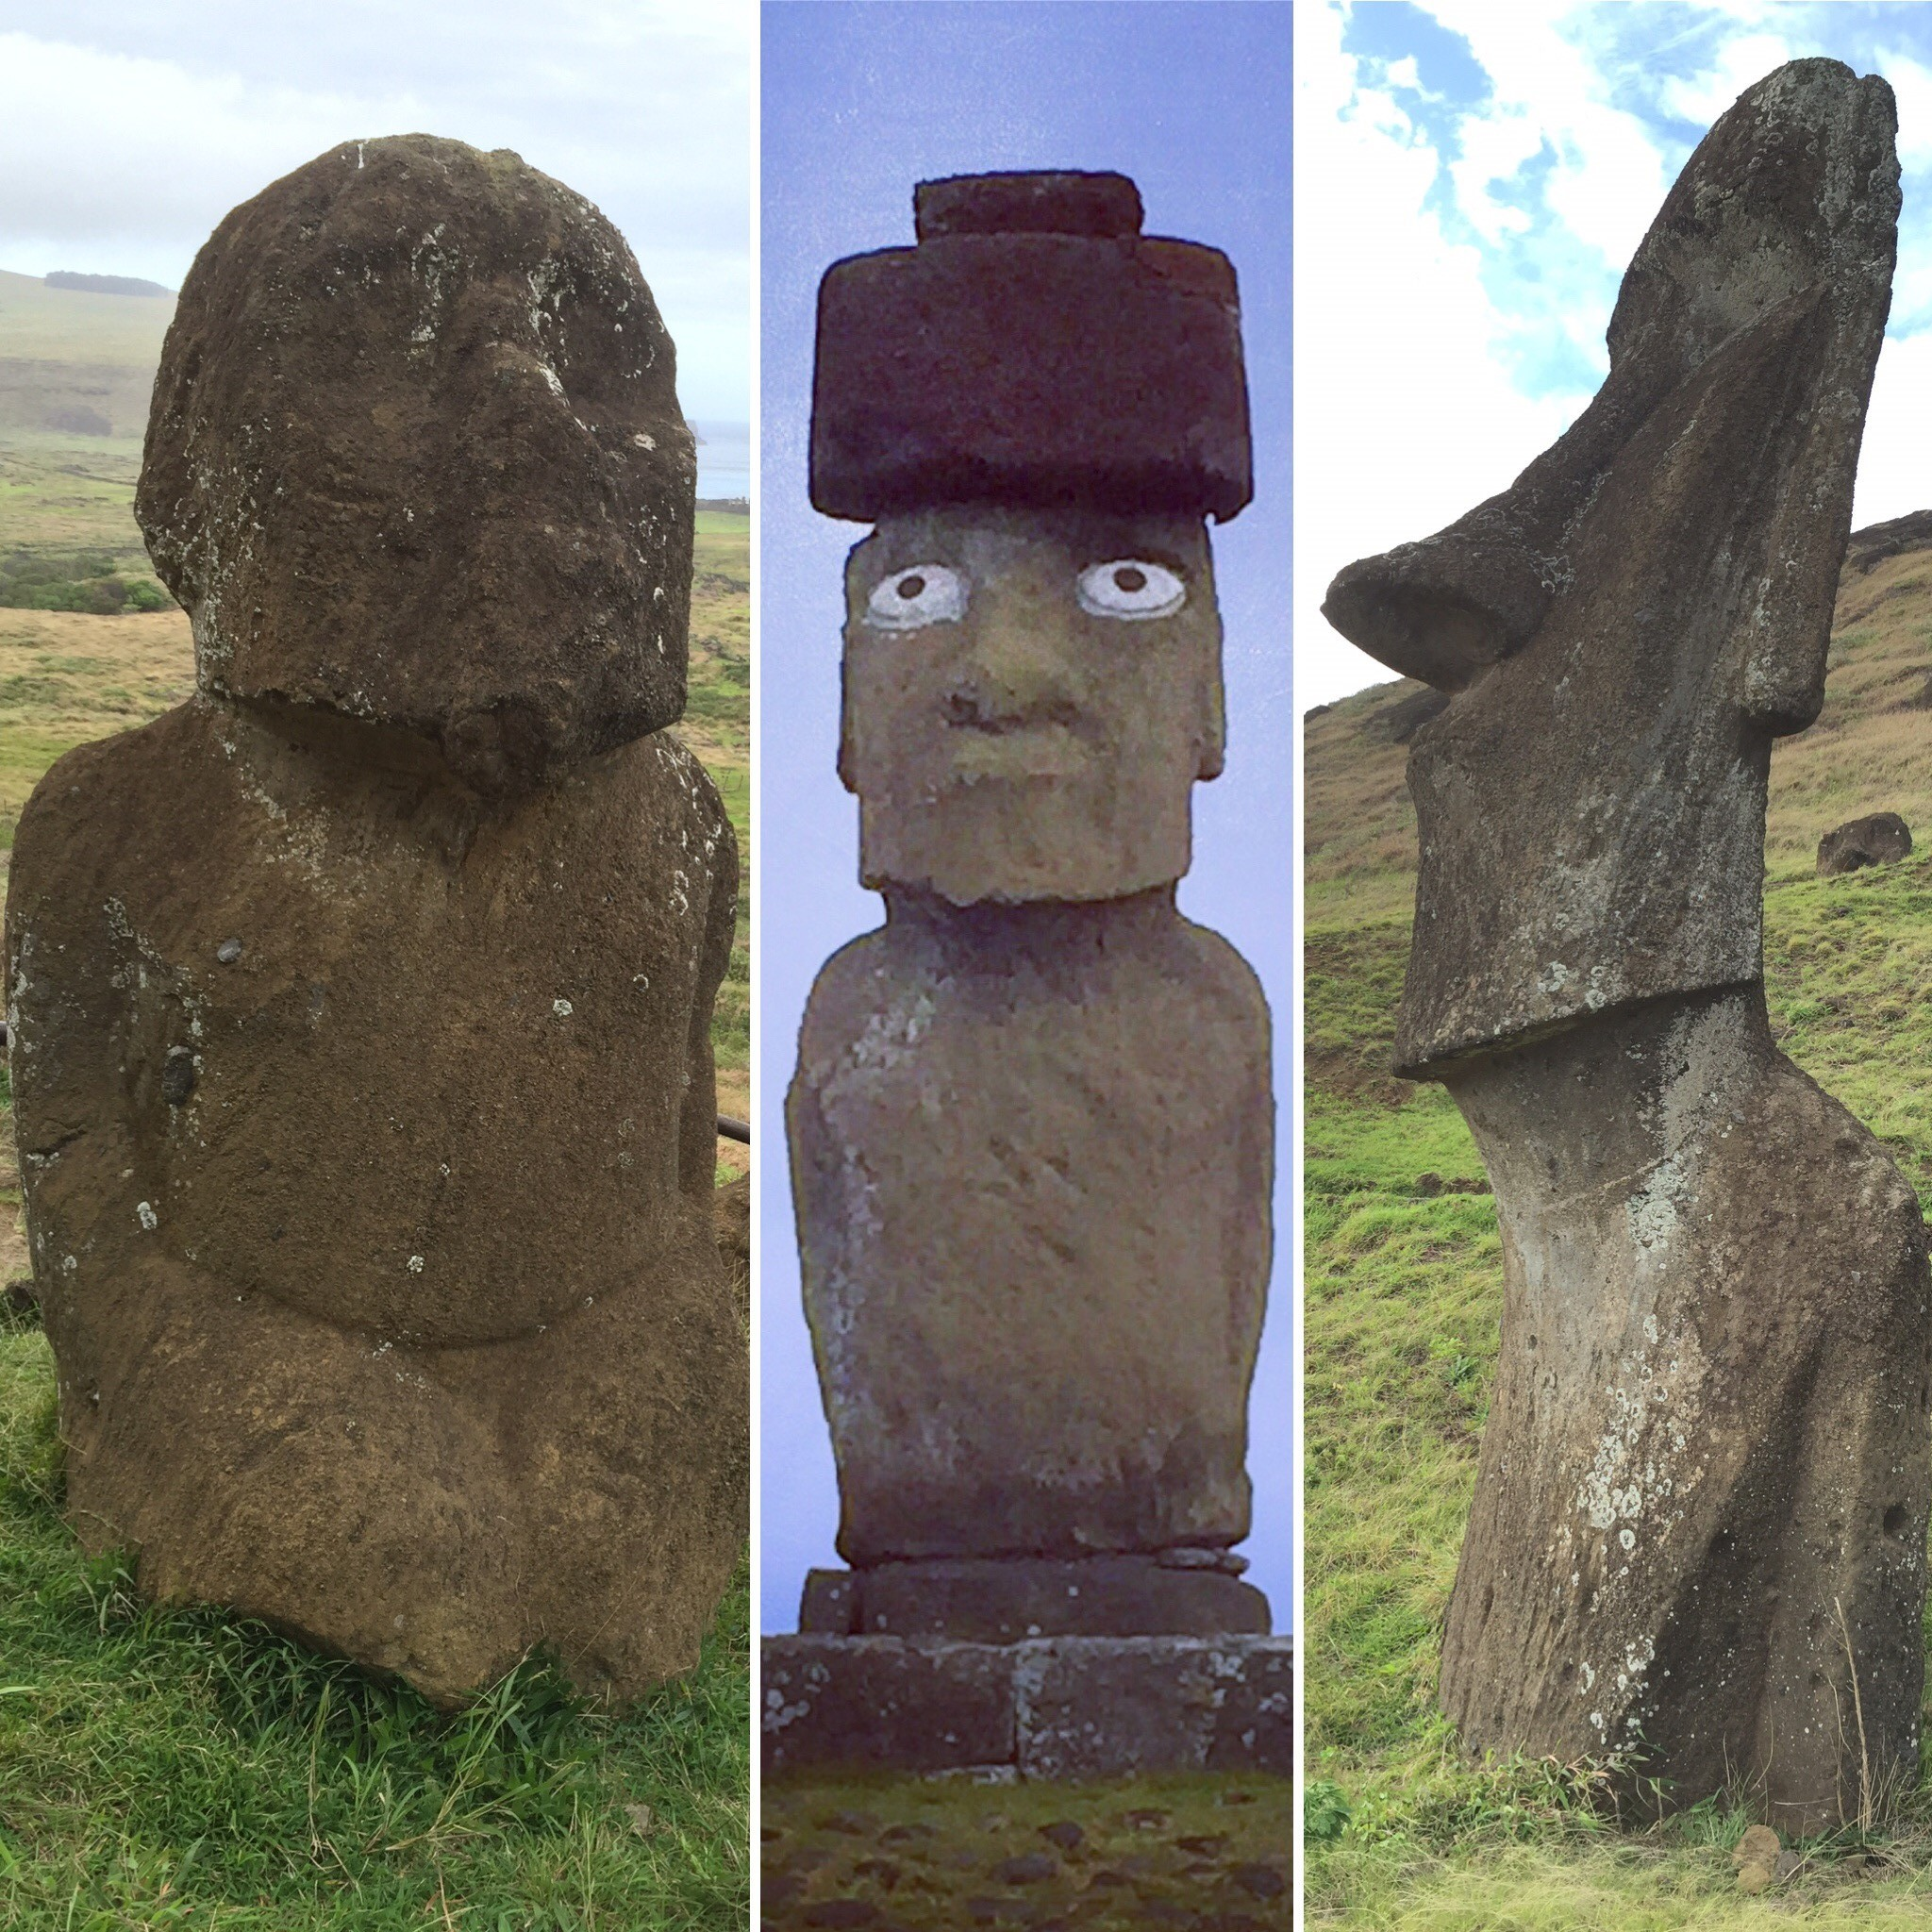 Evolution of the moai statues, from oldest and most primitive to a more evolved, leaner look.